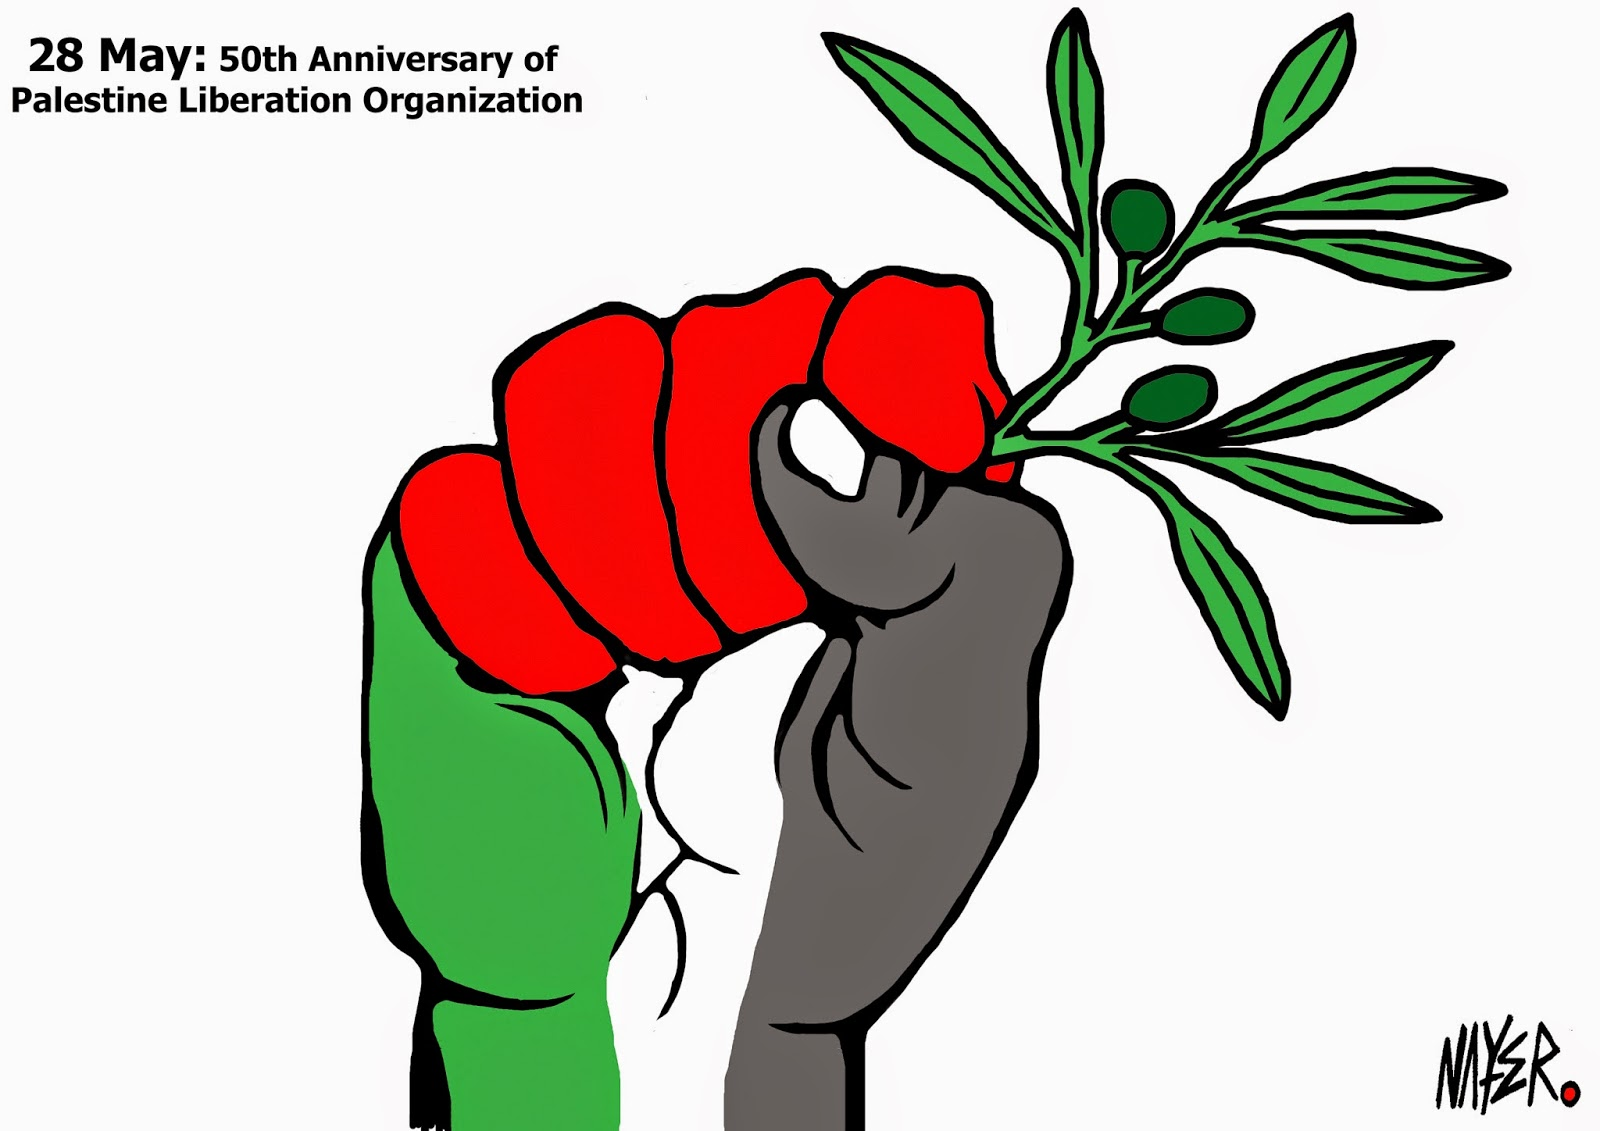 history of palestine liberation organization Palestine liberation organization (plo) since that time it has declared itself the representative of the palestinian people and their nationalist aspirations the plo has operated primarily as an umbrella organization for six palestinian groups, most prominently, yasser arafat's fatah group.